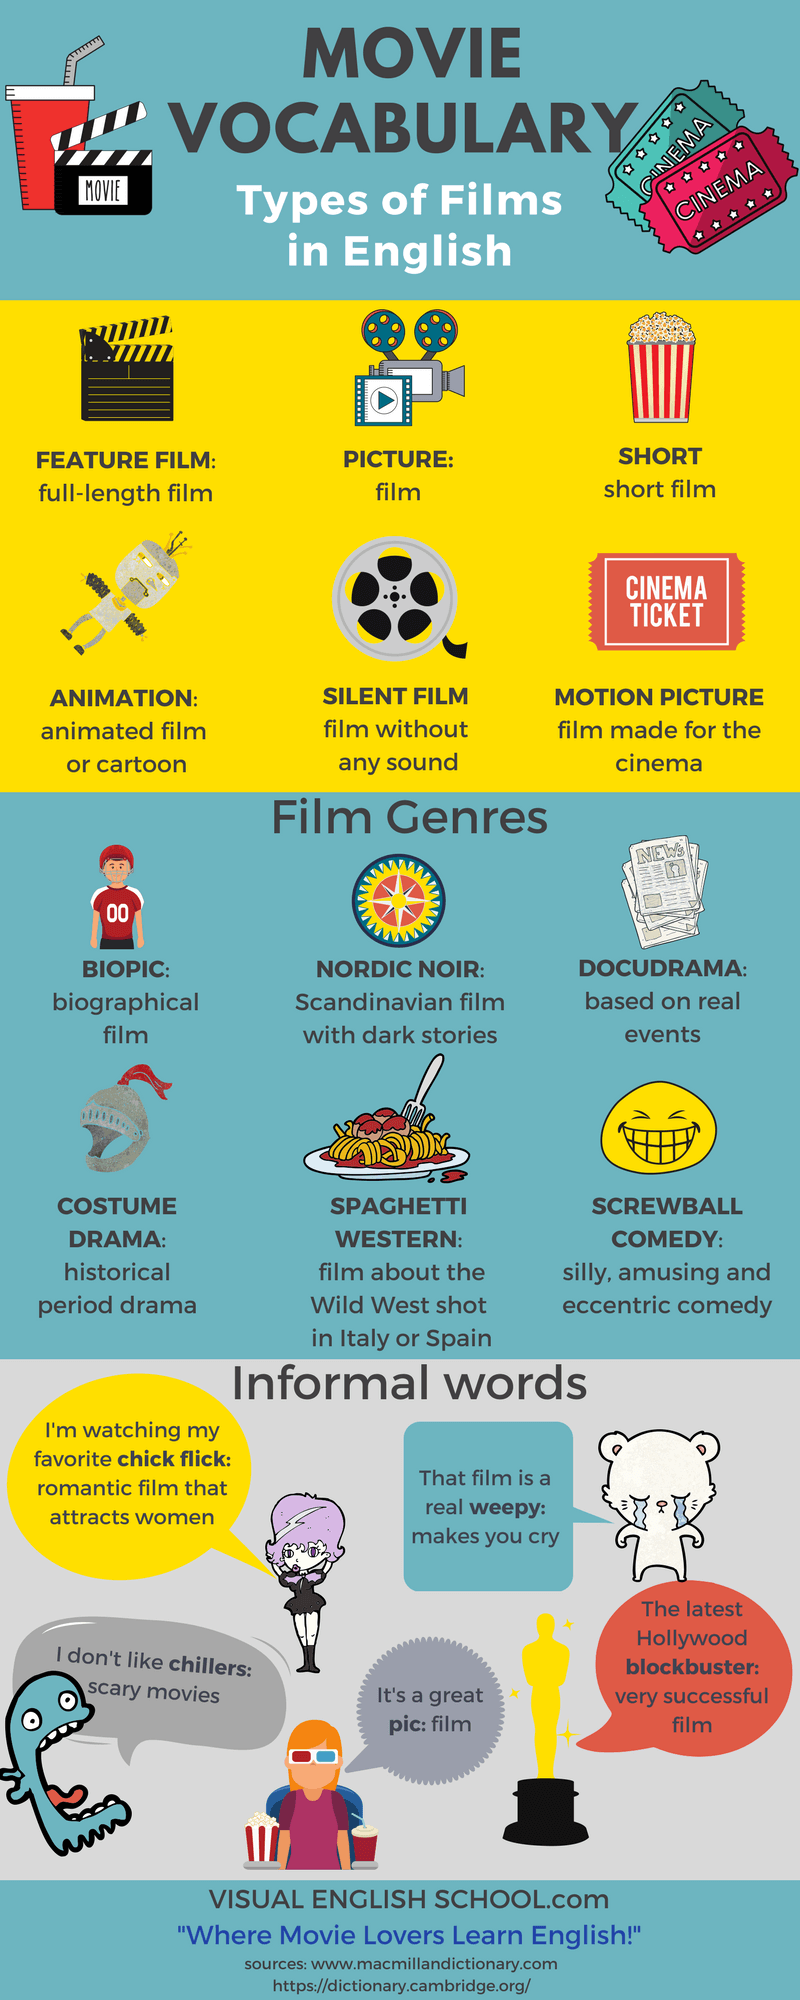 Learn Movie Vocabulary in English with an infographic.